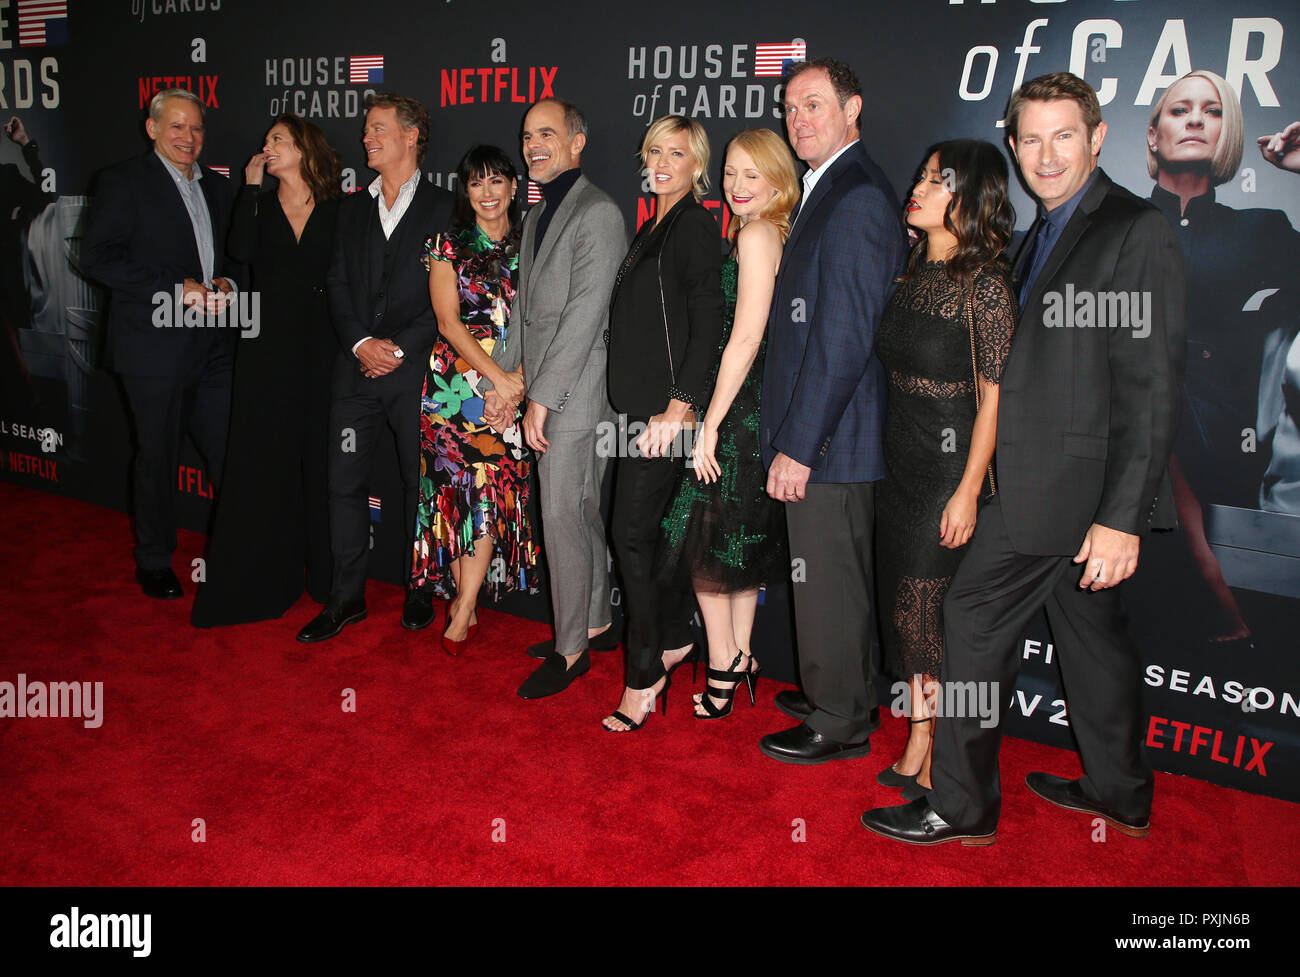 Los Angeles, Ca, USA. 22nd Oct, 2018. Campbell Scott, Diane Lane, Greg Kinnear, Constance Zimmer, Michael Kelly, Robin Wright, Patricia Clarkson, Boris McGiver, Nini Le Huynh, Derek Cecil, Frank Pugliese, Melissa James Gibson, Cindy Holland, at the Season 6 premiere screening of Netflix' House Of Cards at The DGA Theater in Los Angeles, California on October 22, 2018. Credit: Faye Sadou/Media Punch/Alamy Live News - Stock Image